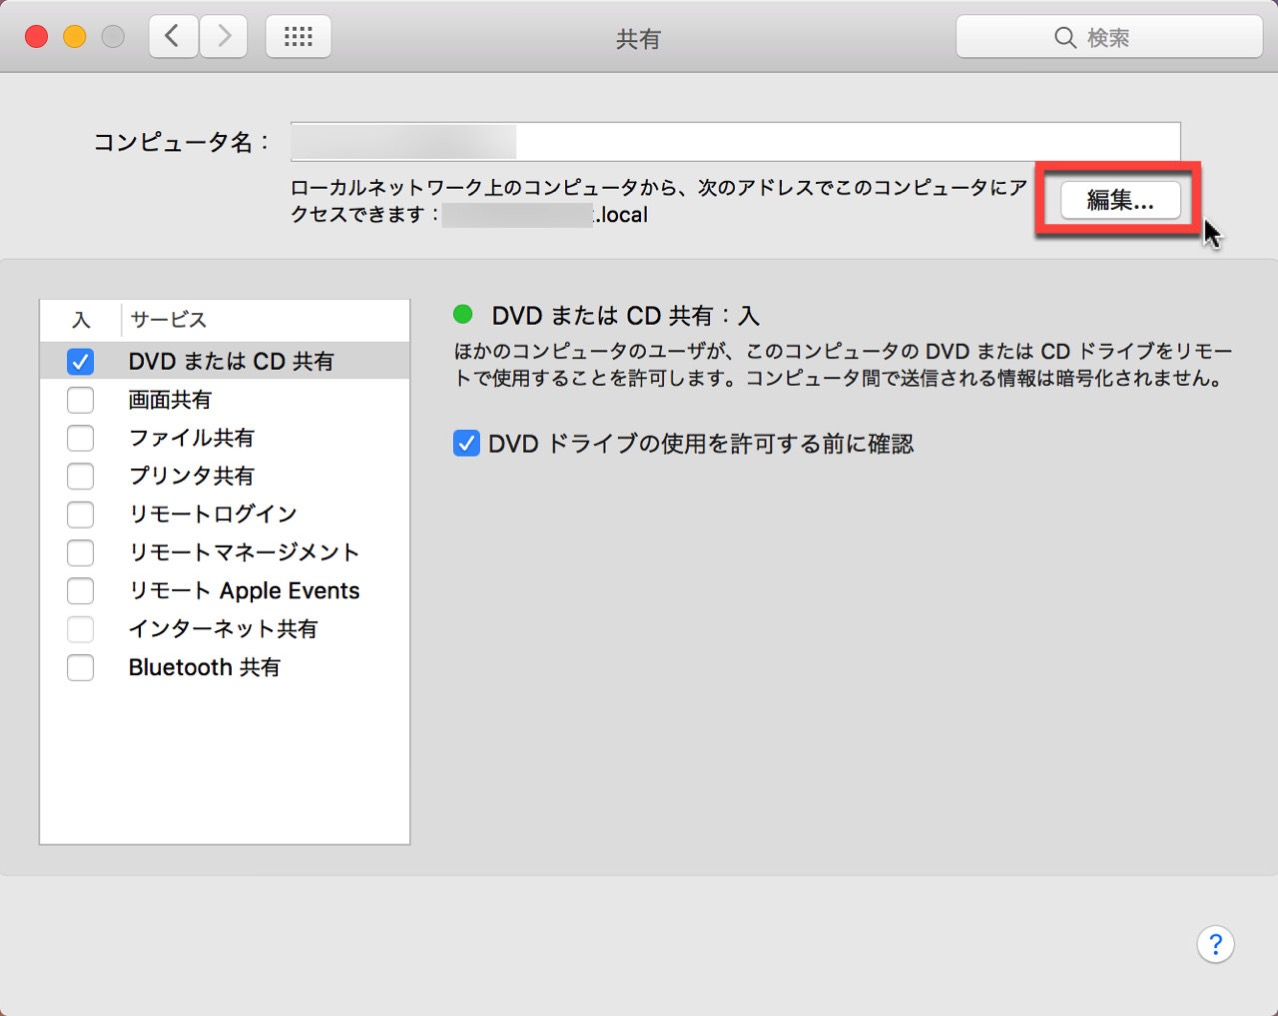 How to change local host name of mac3